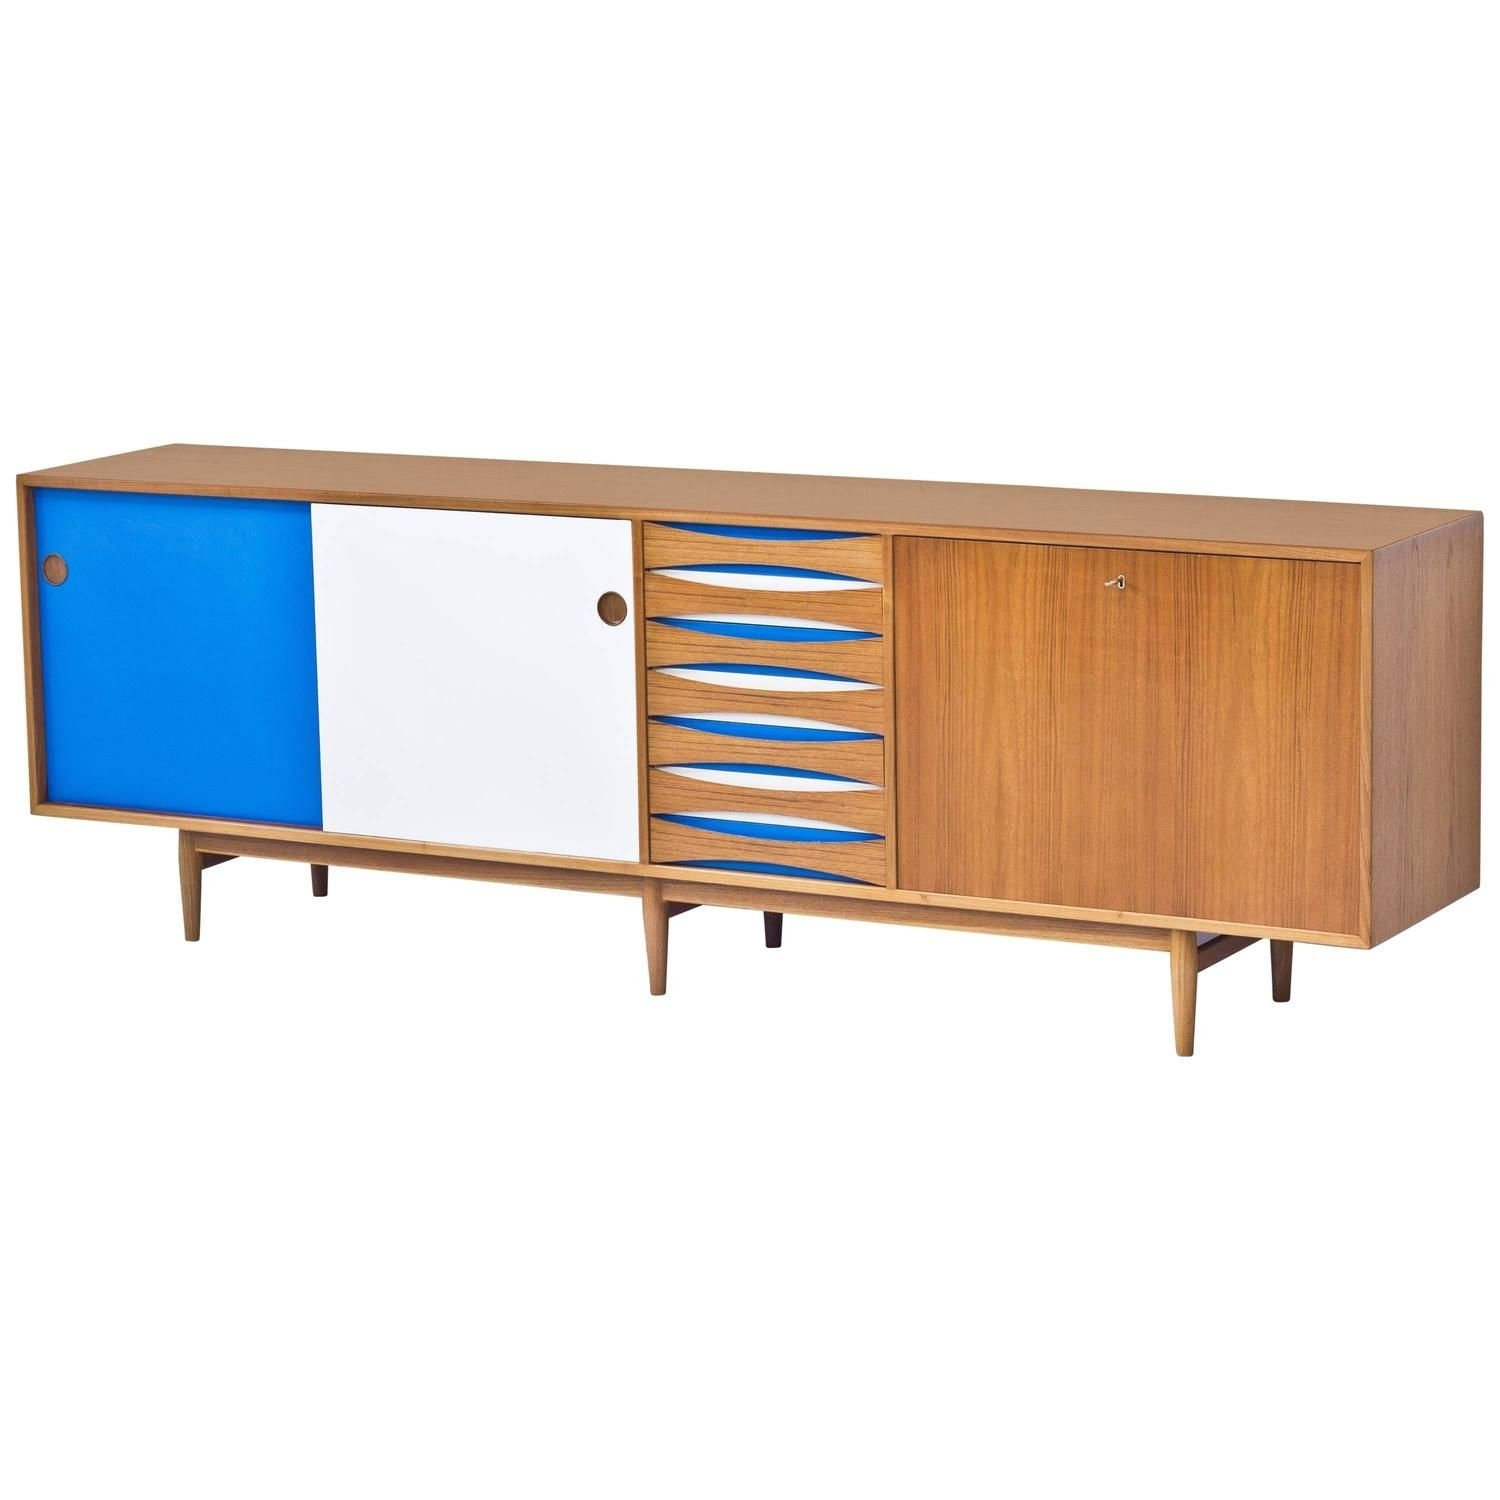 Sideboard Model 29Aarne Vodder | Furniture Storage, Teak And Drawers Within Most Up To Date Dark Smoked Oak With White Marble Top Sideboards (#10 of 20)